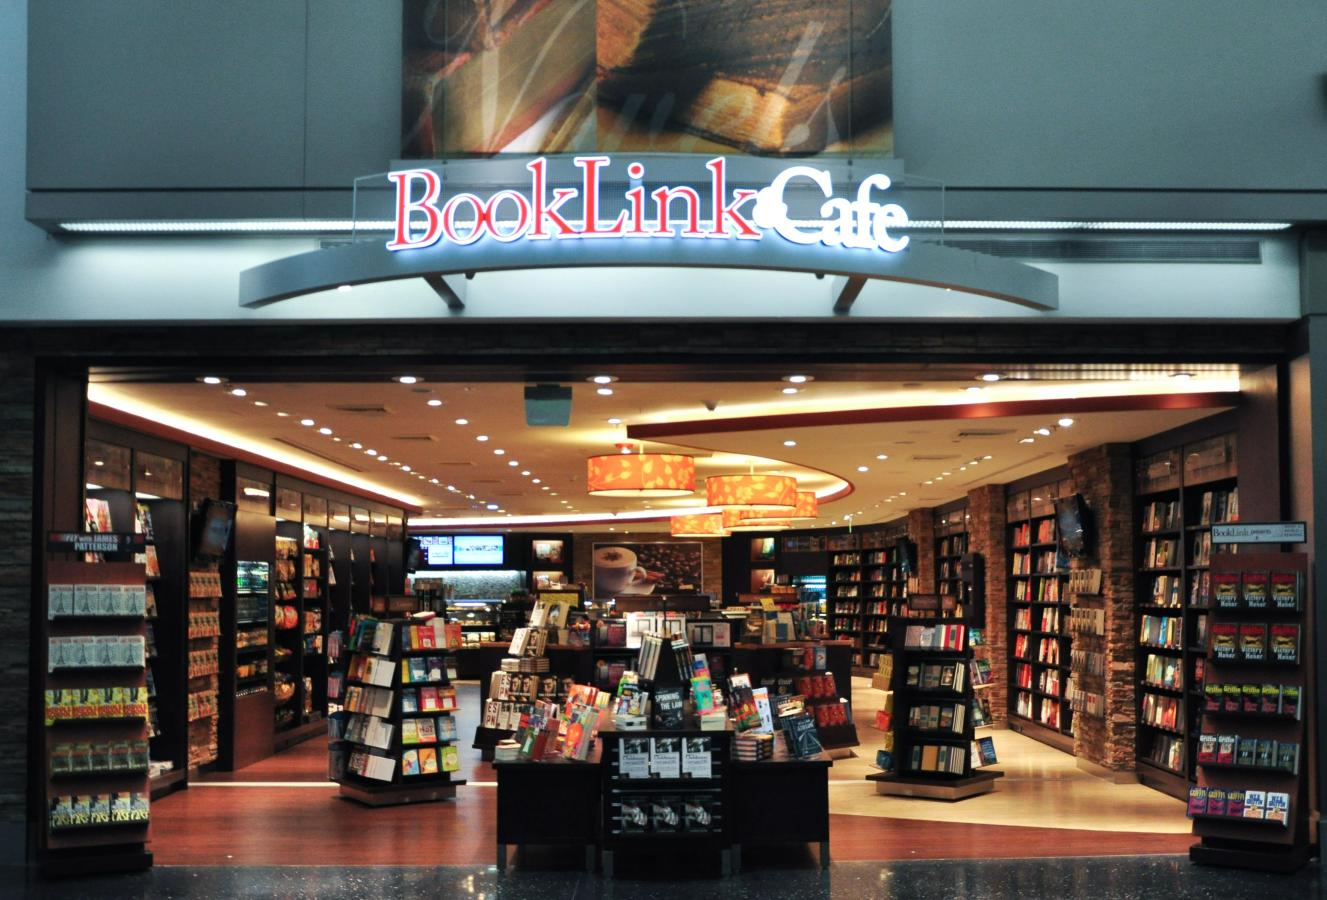 BookLink & Cafe MIA- North Terminal by Gate D-20